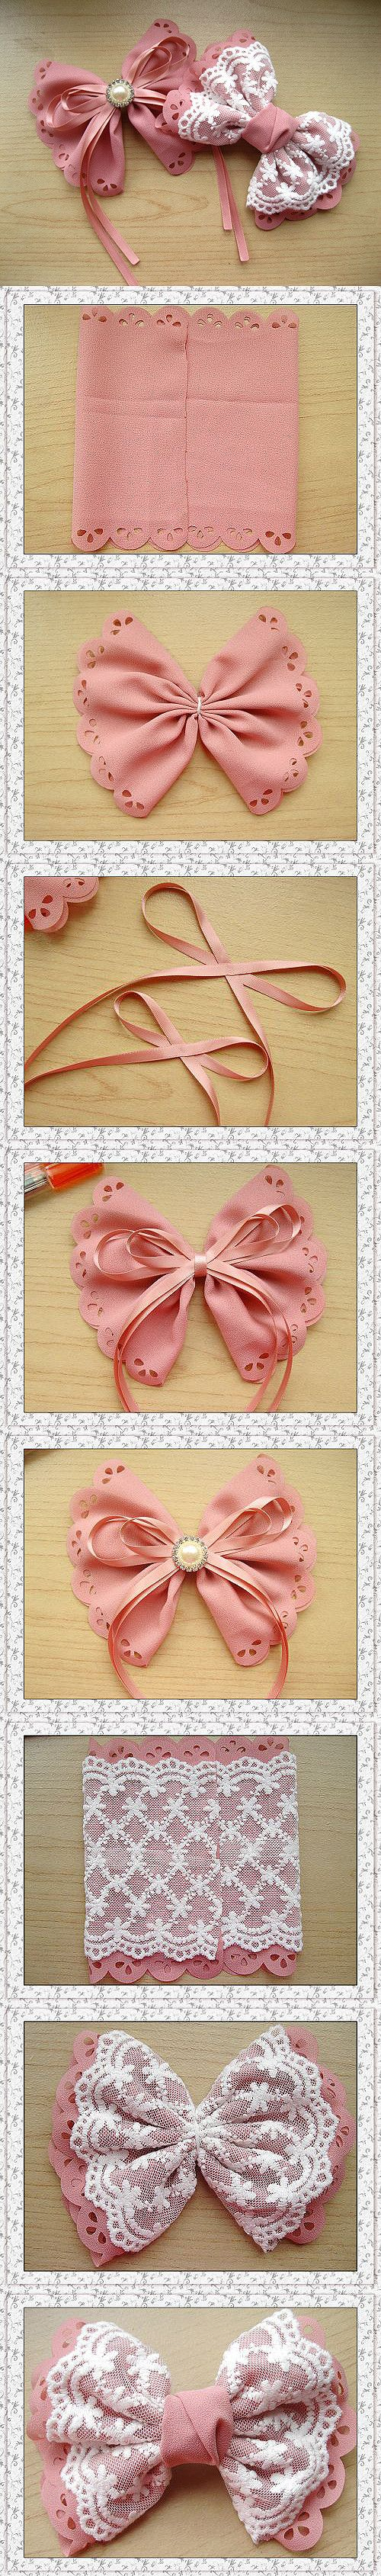 DIY bows #diy #crafts